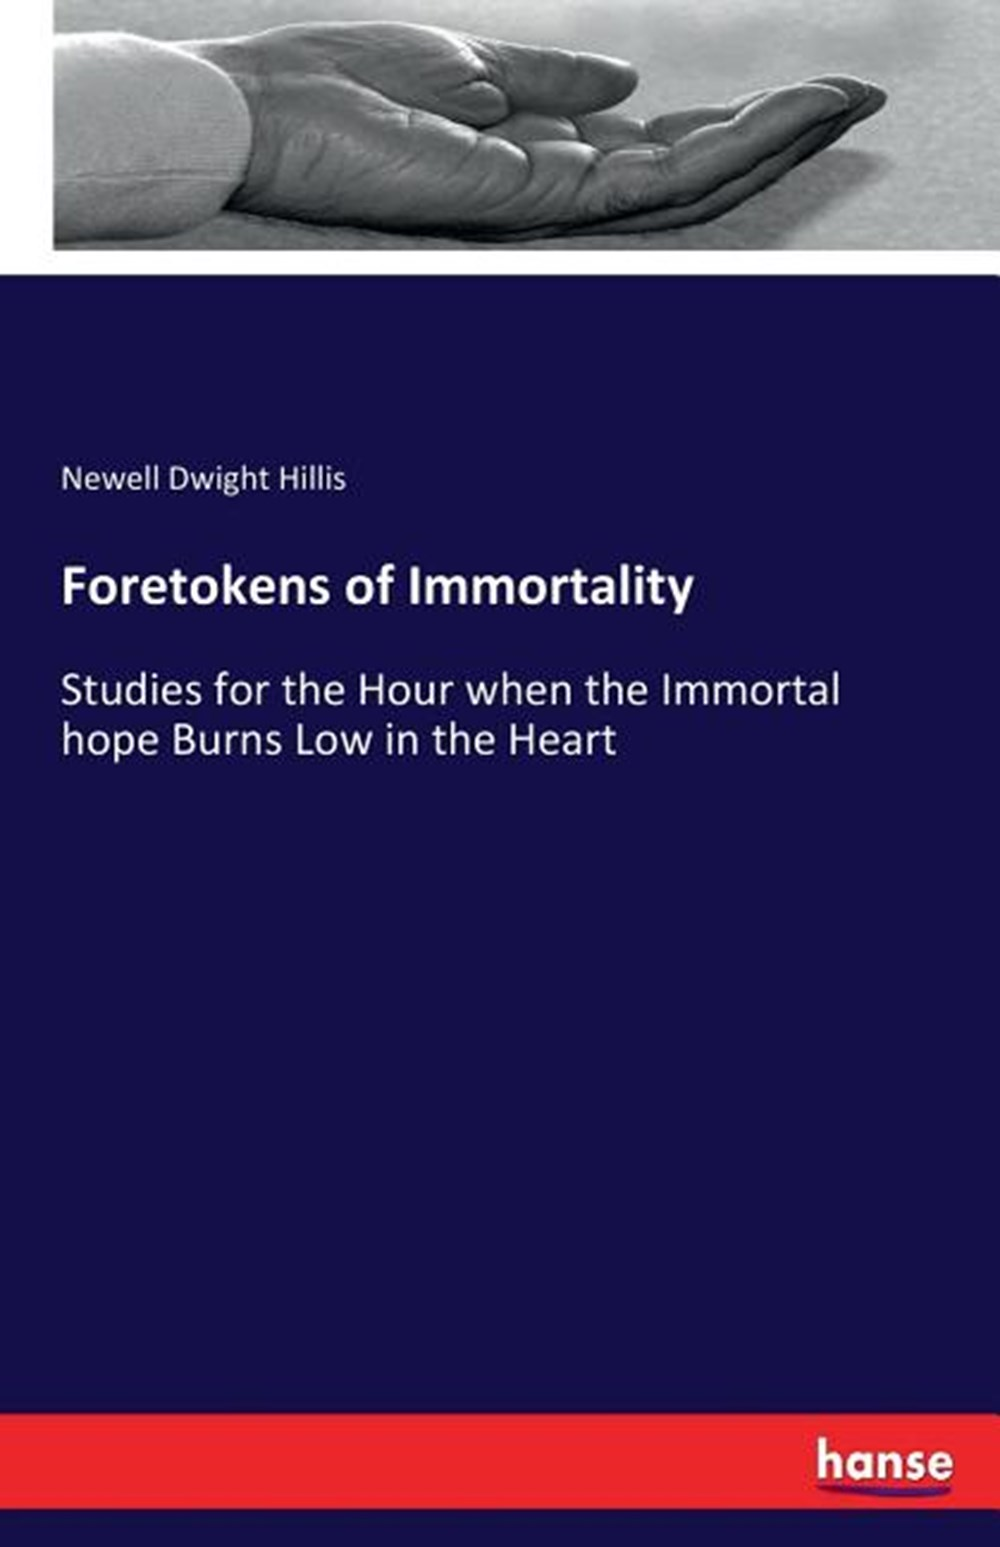 Foretokens of Immortality Studies for the Hour when the Immortal hope Burns Low in the Heart